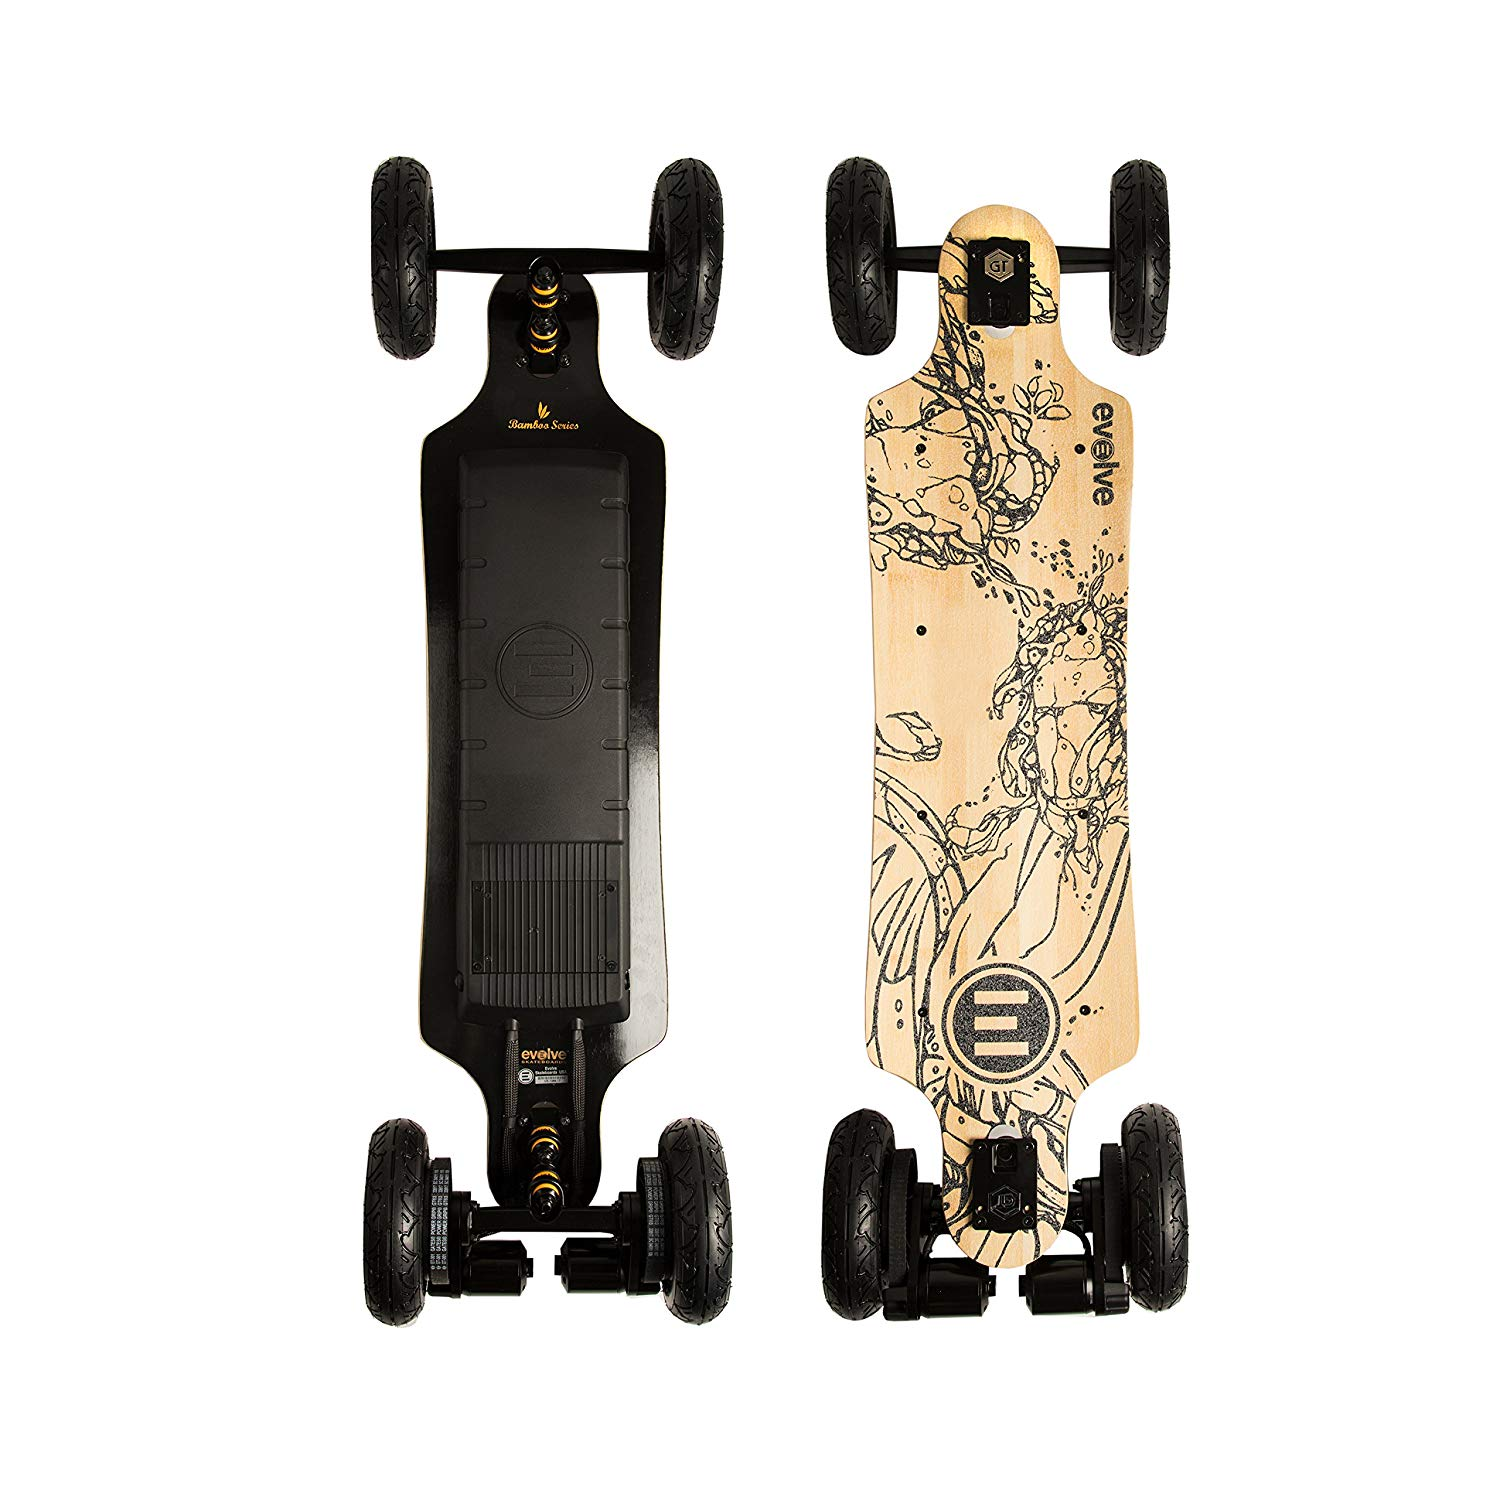 Evolve Skateboards – Bamboo GT Series Electric Skateboard